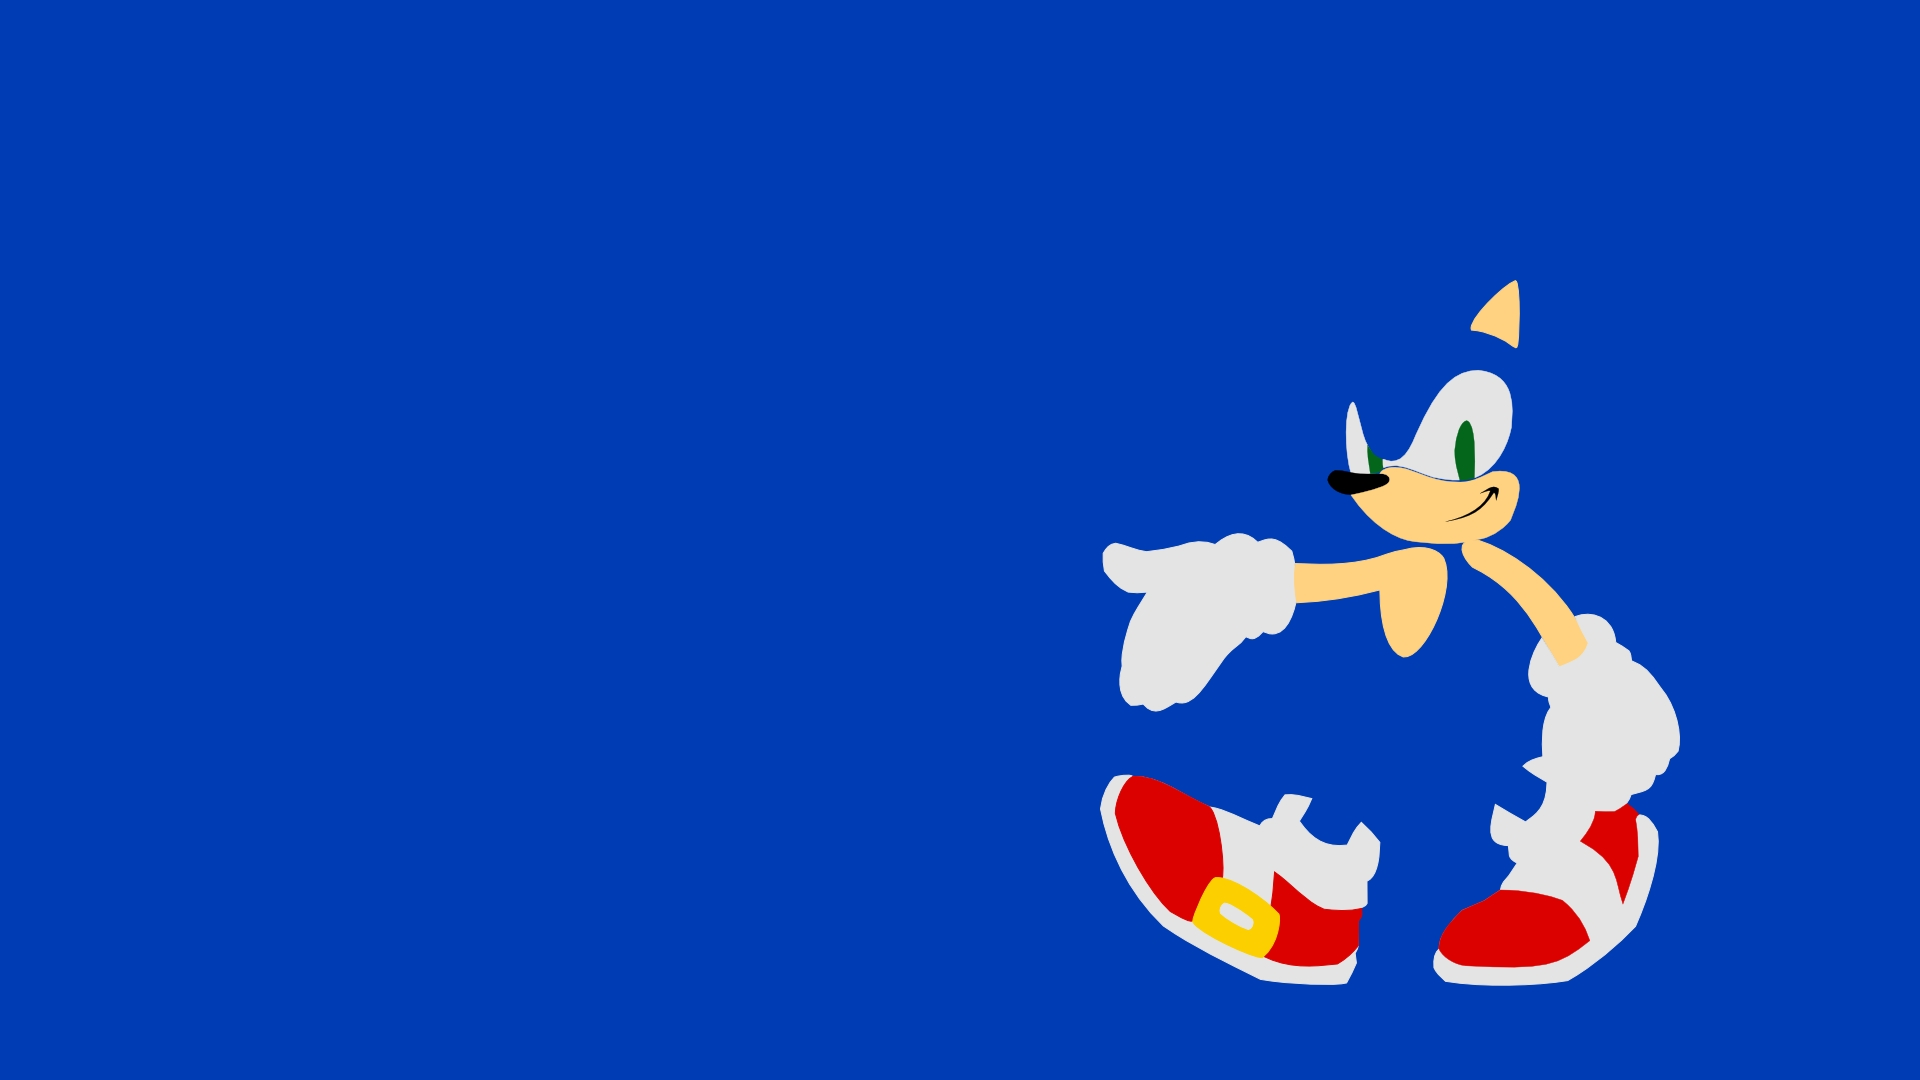 sonic 1080p wallpaper http://wallpapers-and-backgrounds/sonic